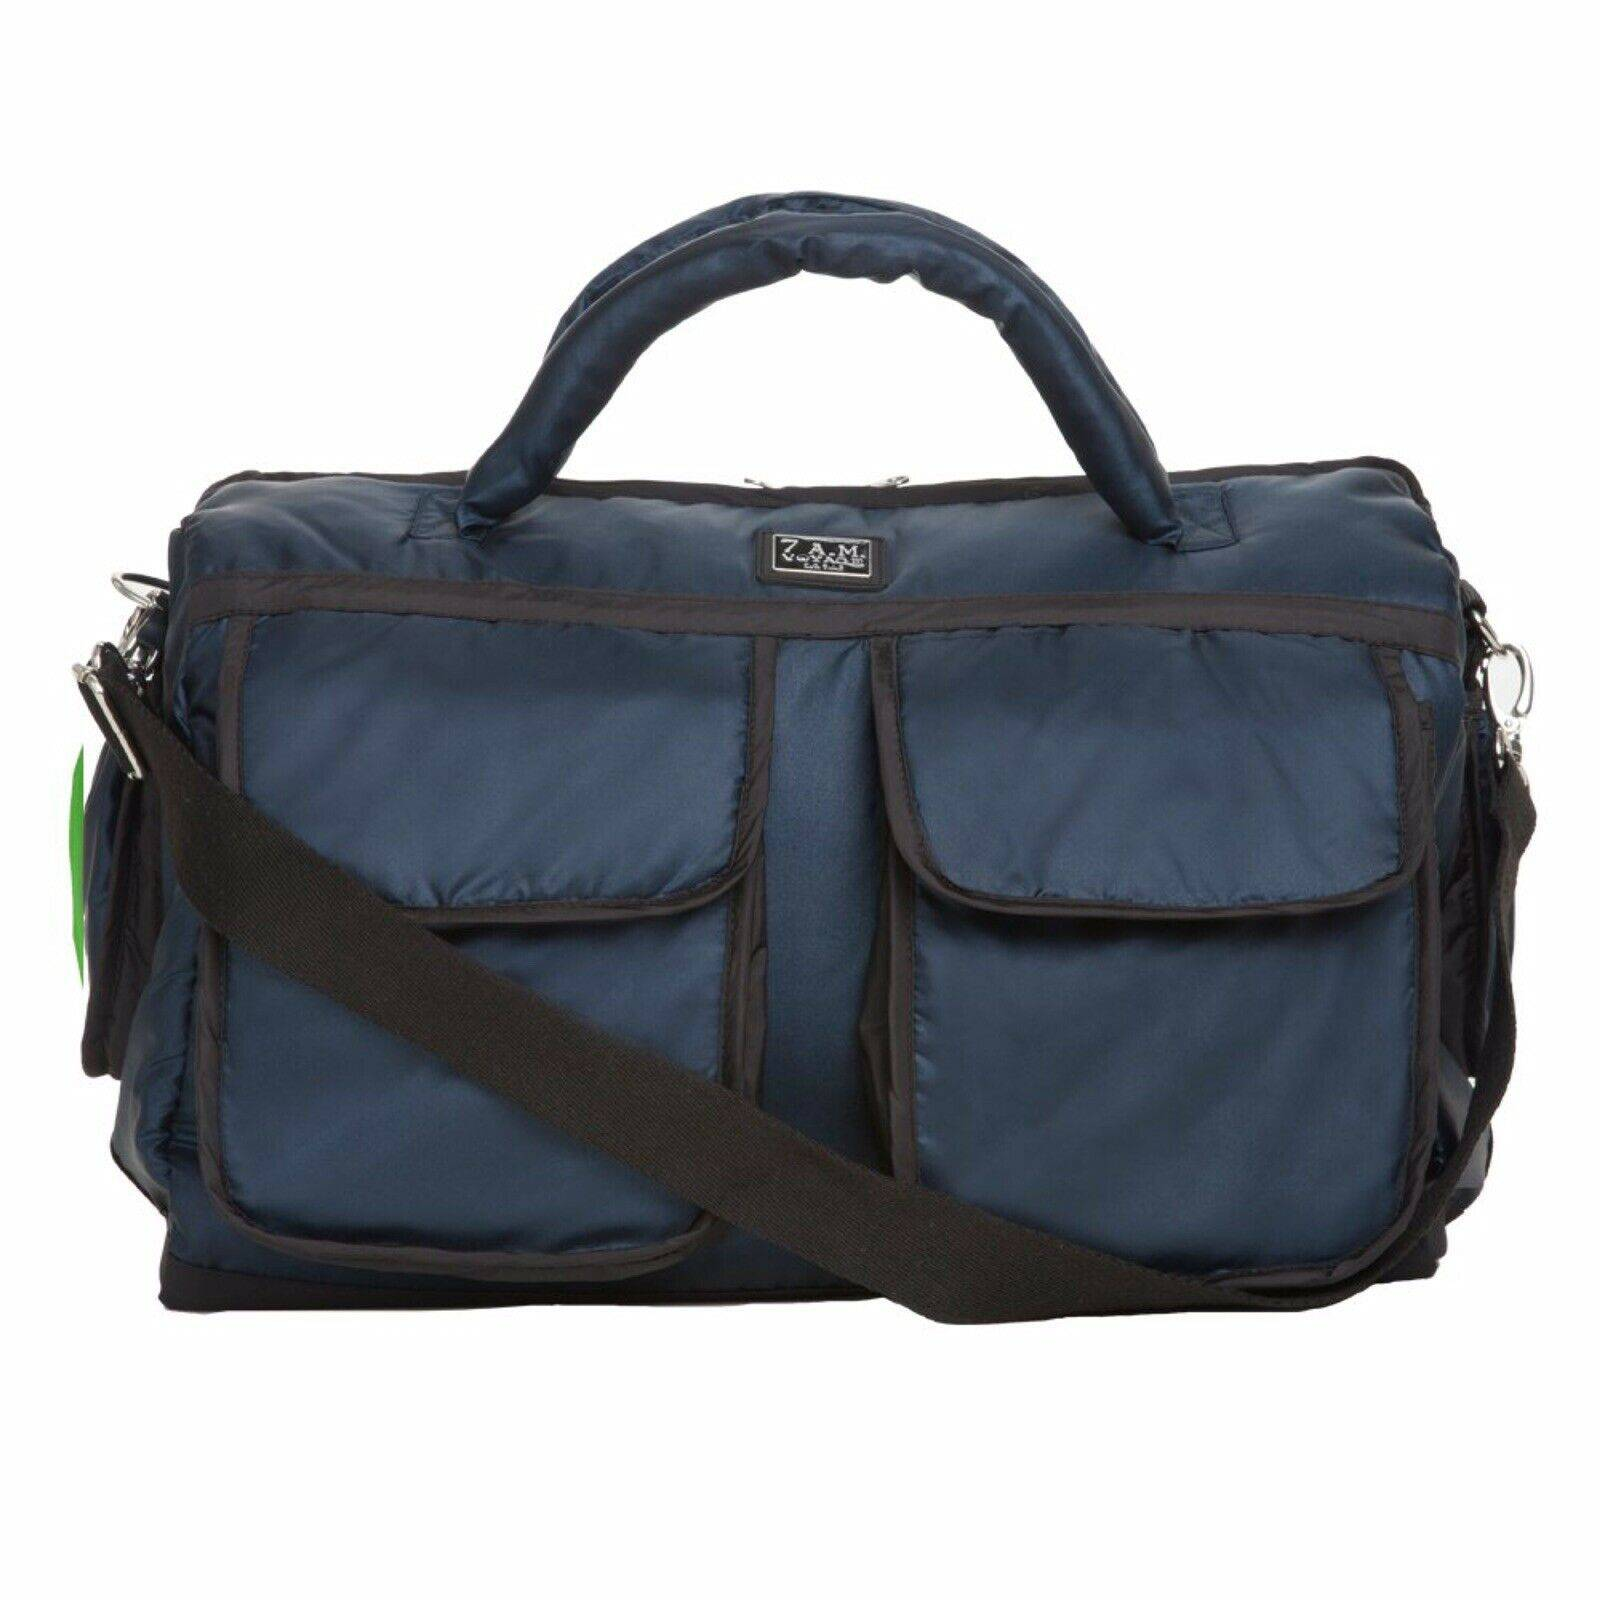 7AM Voyage Diaper Bag Small Prussian